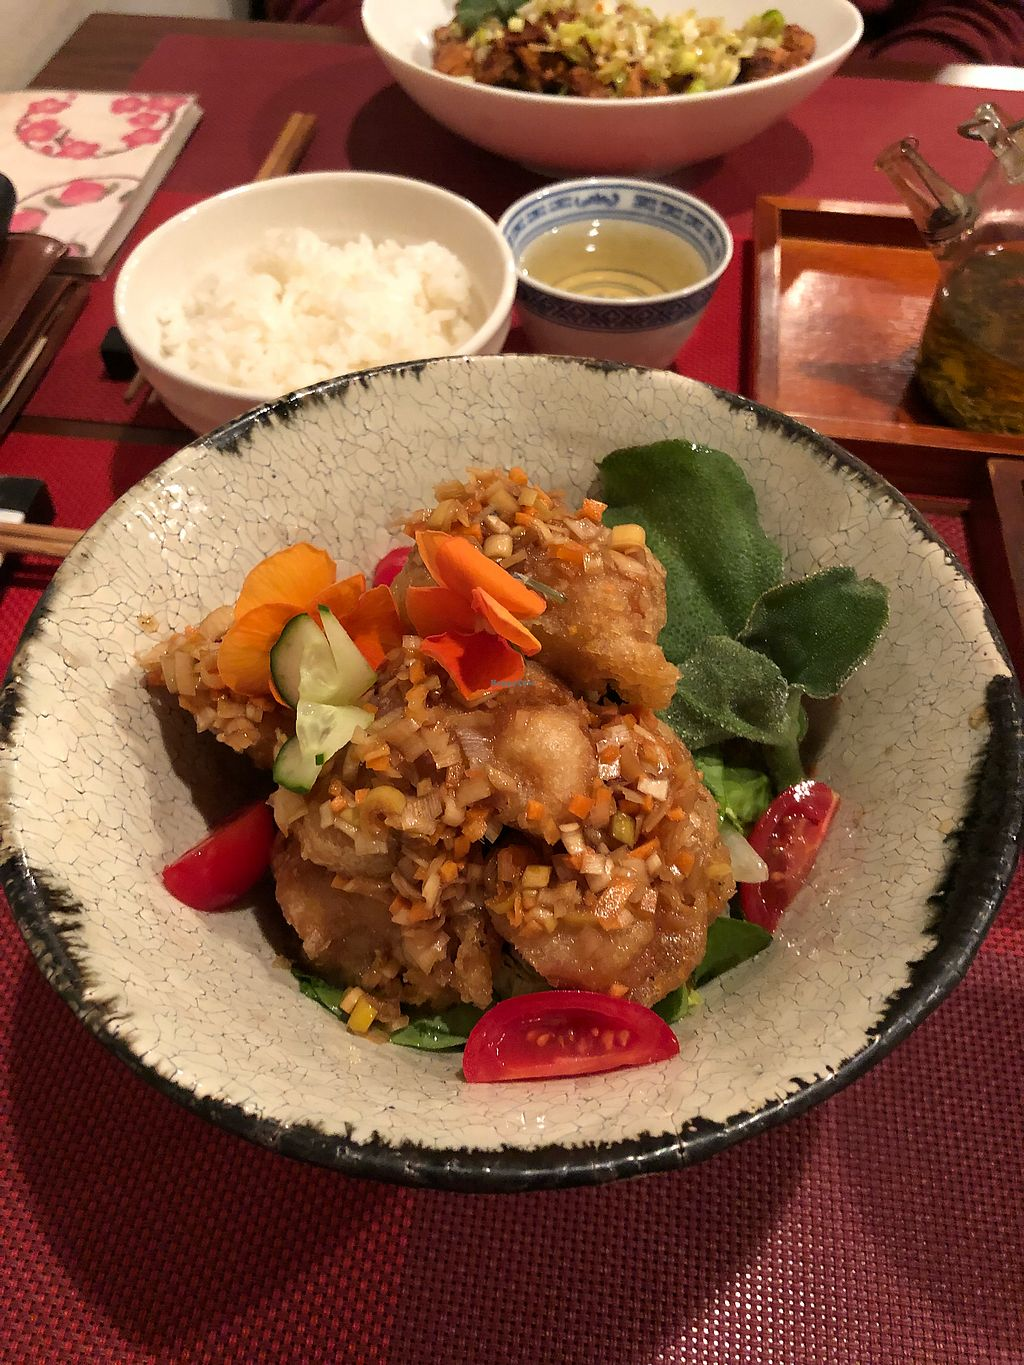 """Photo of Saizencyuka anzu  by <a href=""""/members/profile/HelaniVithanage"""">HelaniVithanage</a> <br/>Vegan Soy 'Chicken' with vinegar dressing  <br/> April 15, 2018  - <a href='/contact/abuse/image/87323/386185'>Report</a>"""